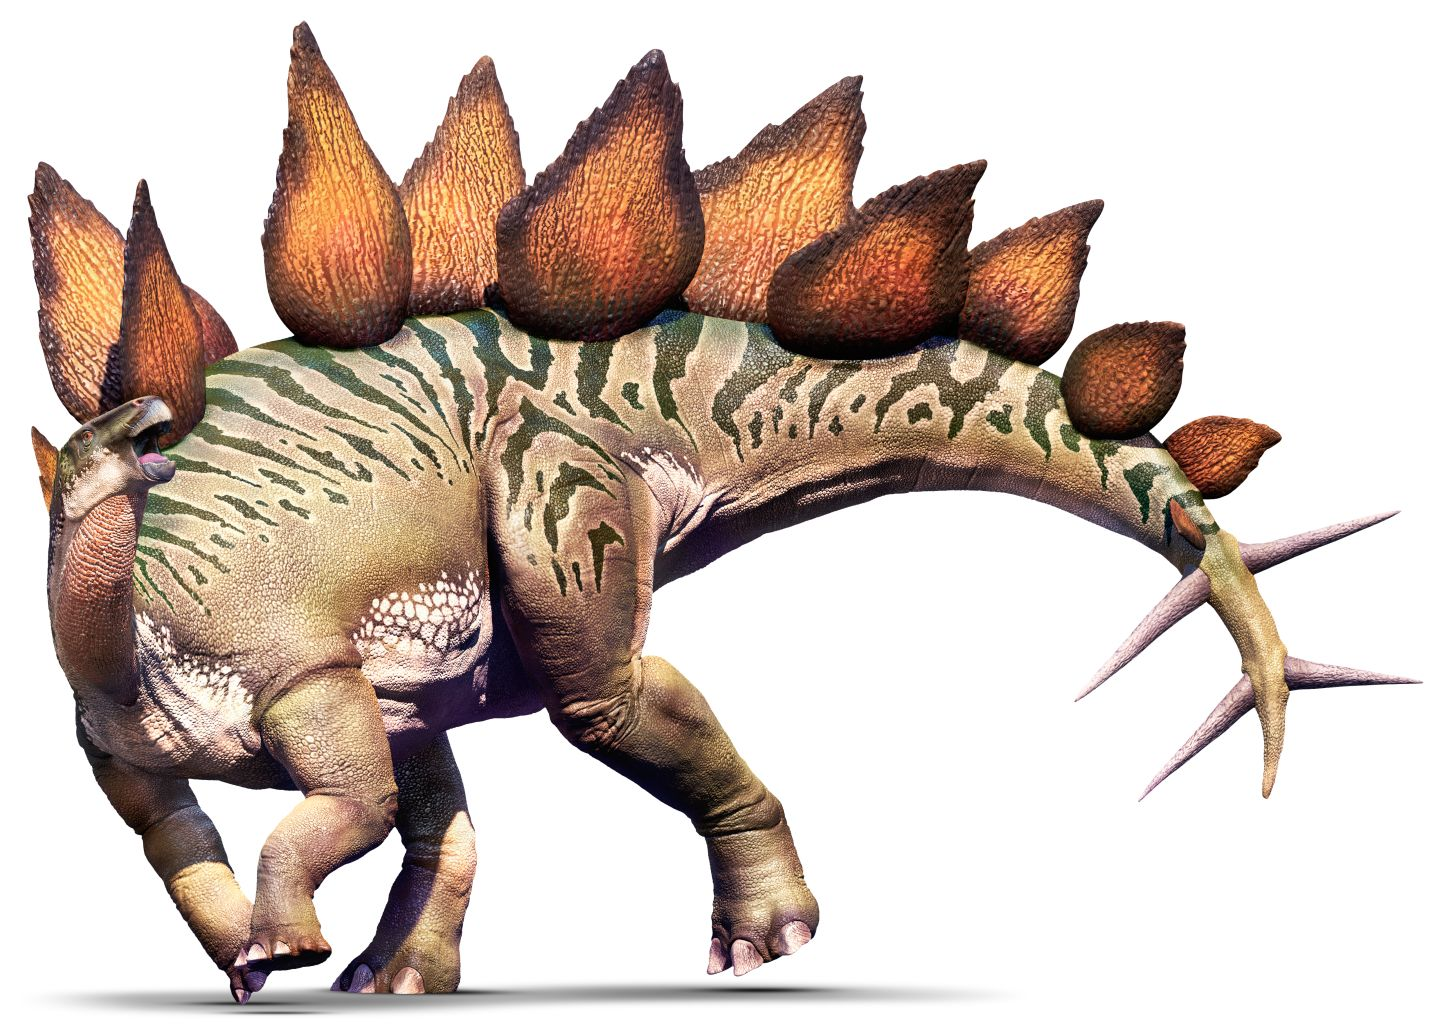 Stegosaurus Dinopedia The Free Dinosaur Encyclopedia